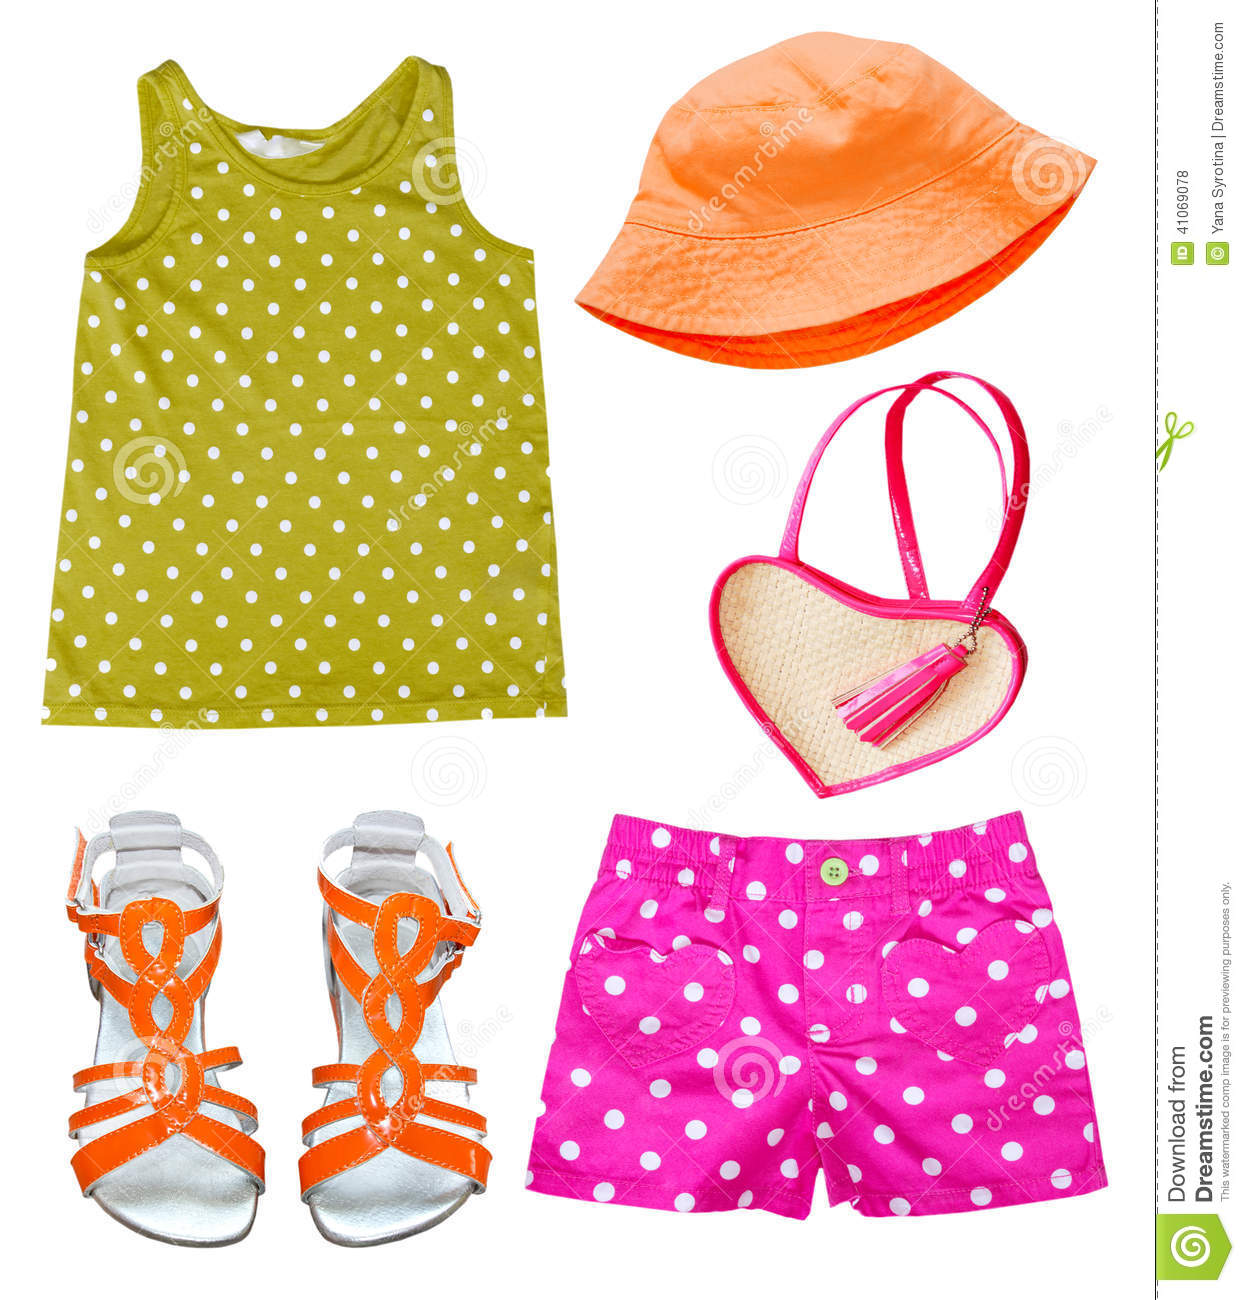 Baby Clothes Fashion Blogs